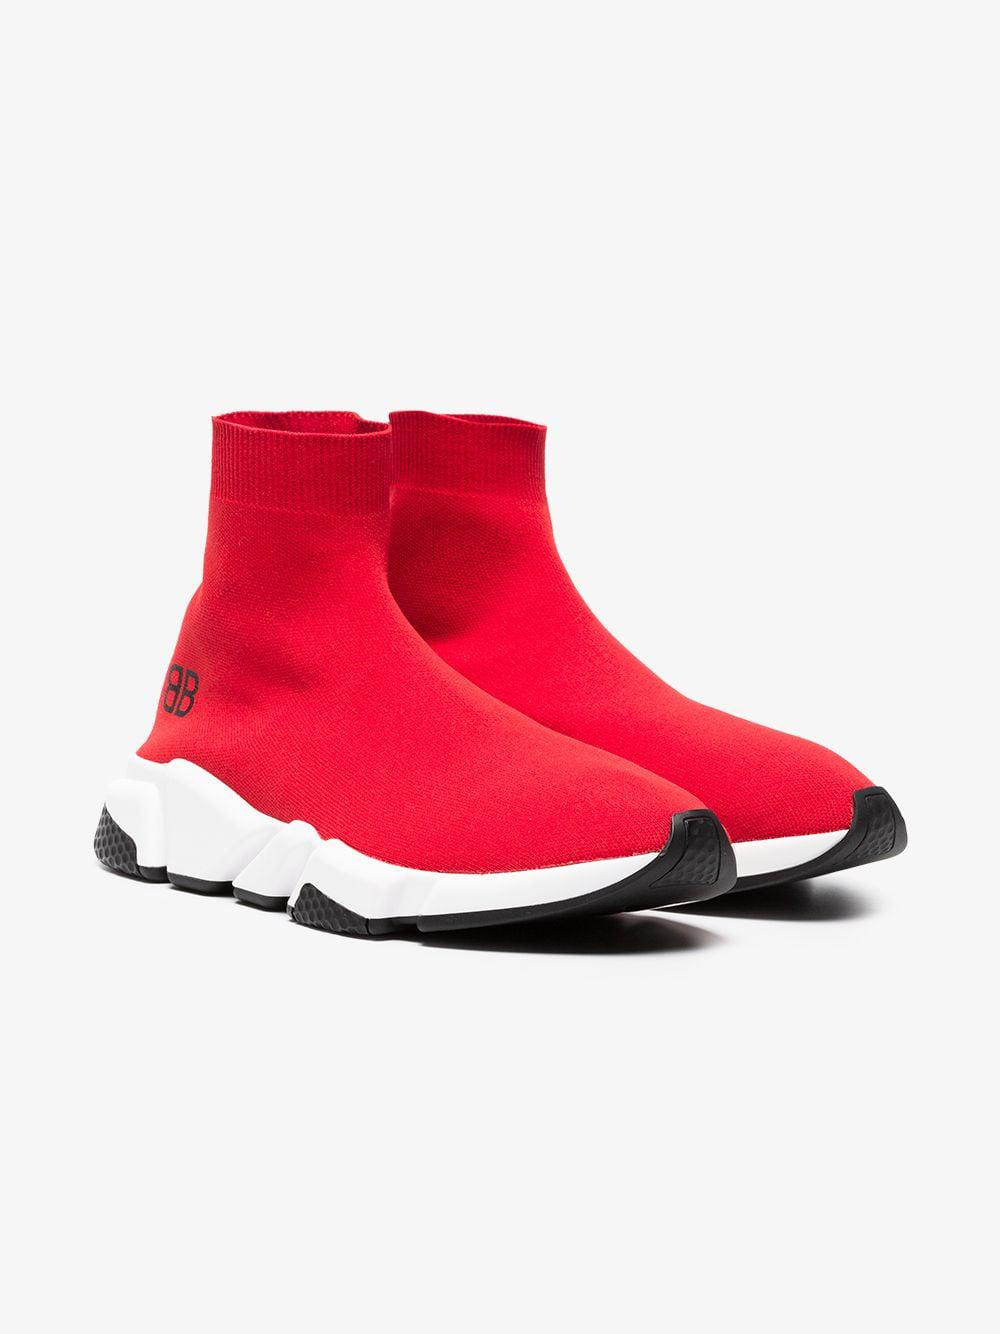 5ac0d580feb2 Lyst - Balenciaga Red Speed Low Sneakers in Red for Men